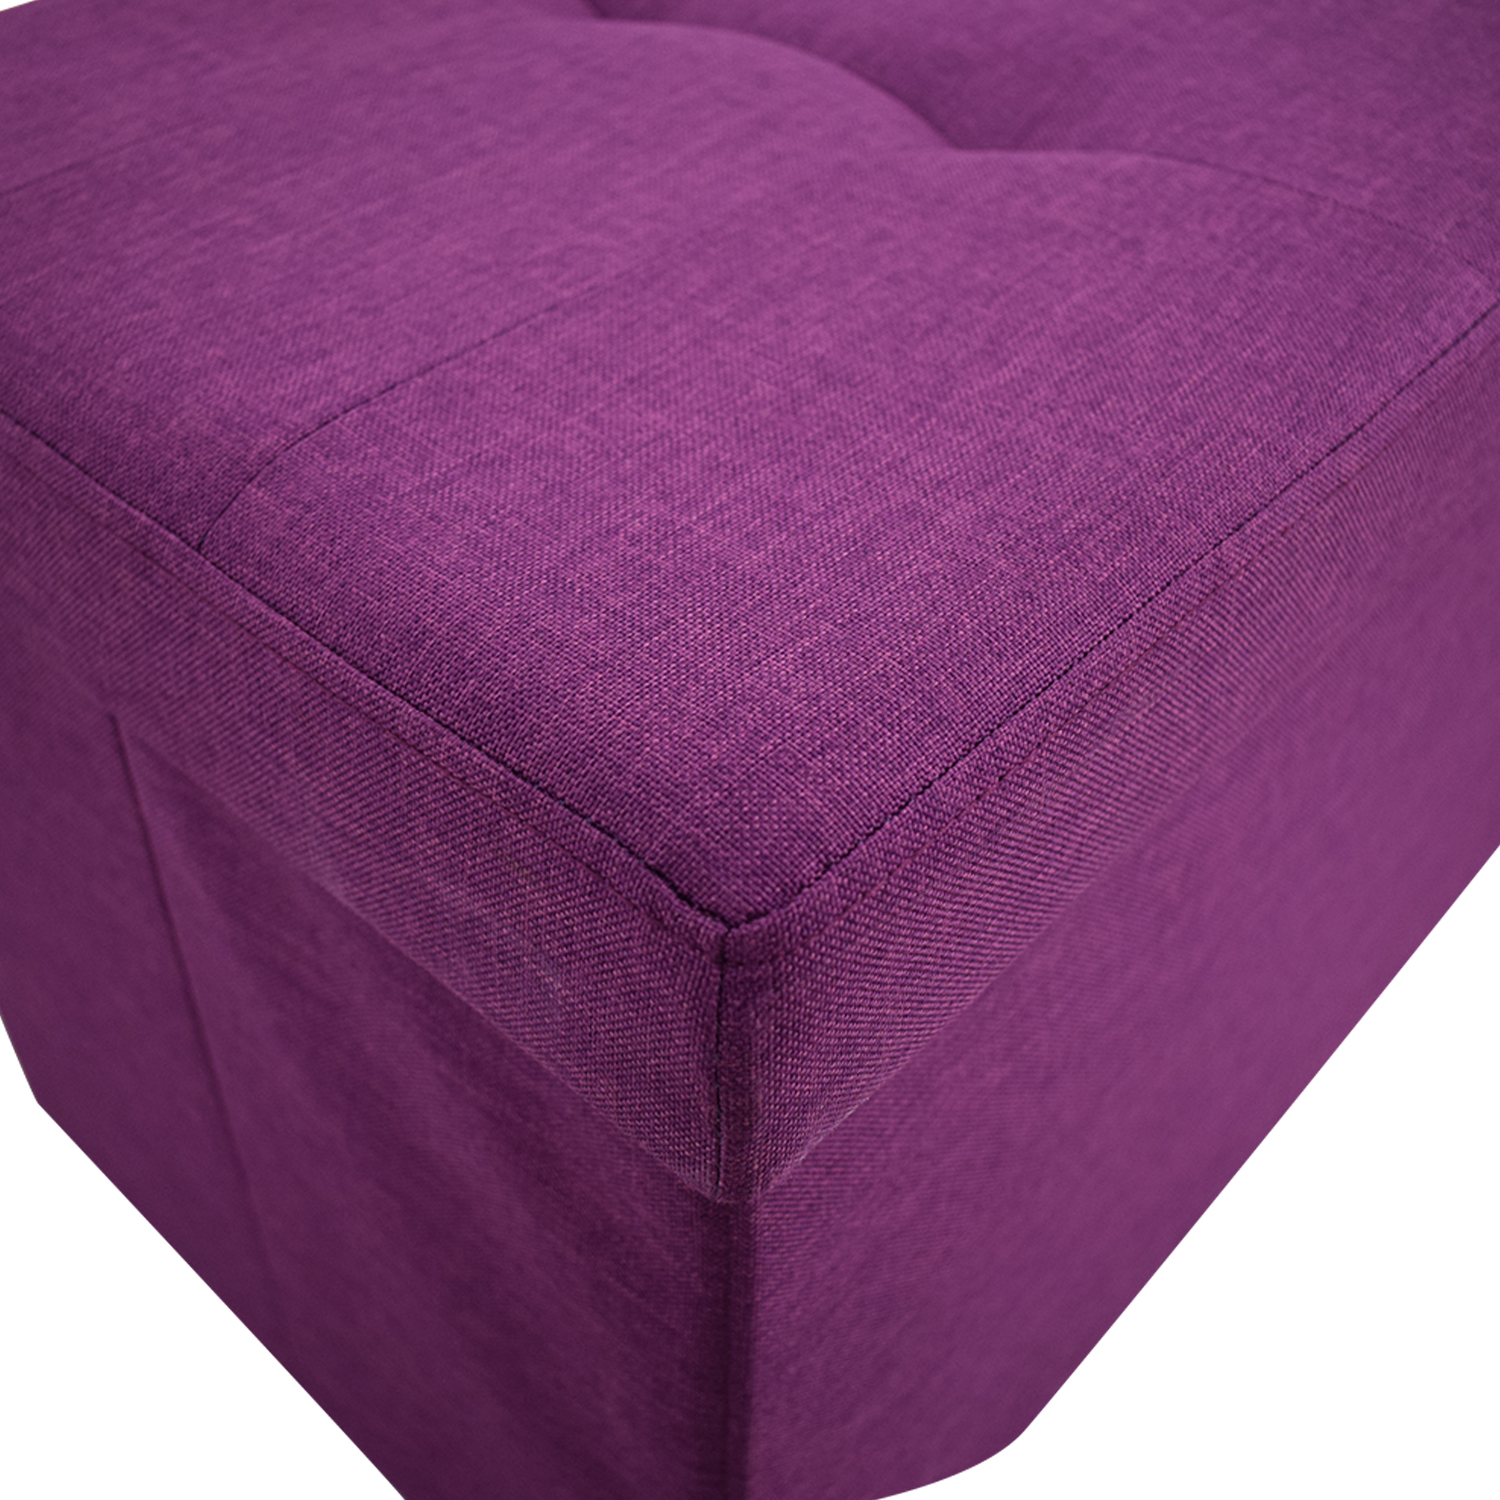 Magenta Tufted Storage Bench dimensions